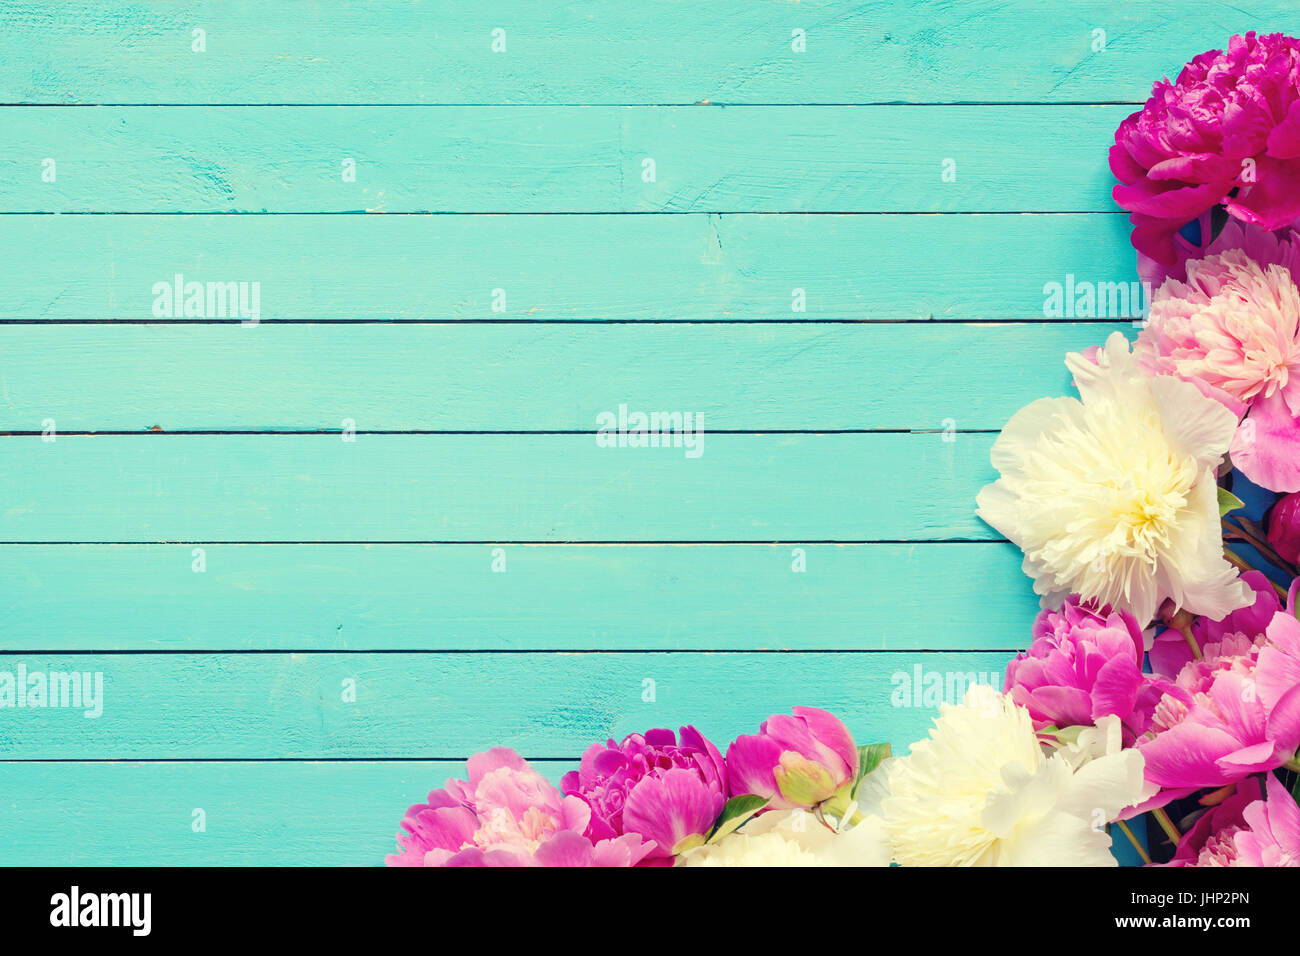 Floral frame / background with beautiful pink, purple and white peonies on old turquoise wooden planks. Shabby chic, - Stock Image